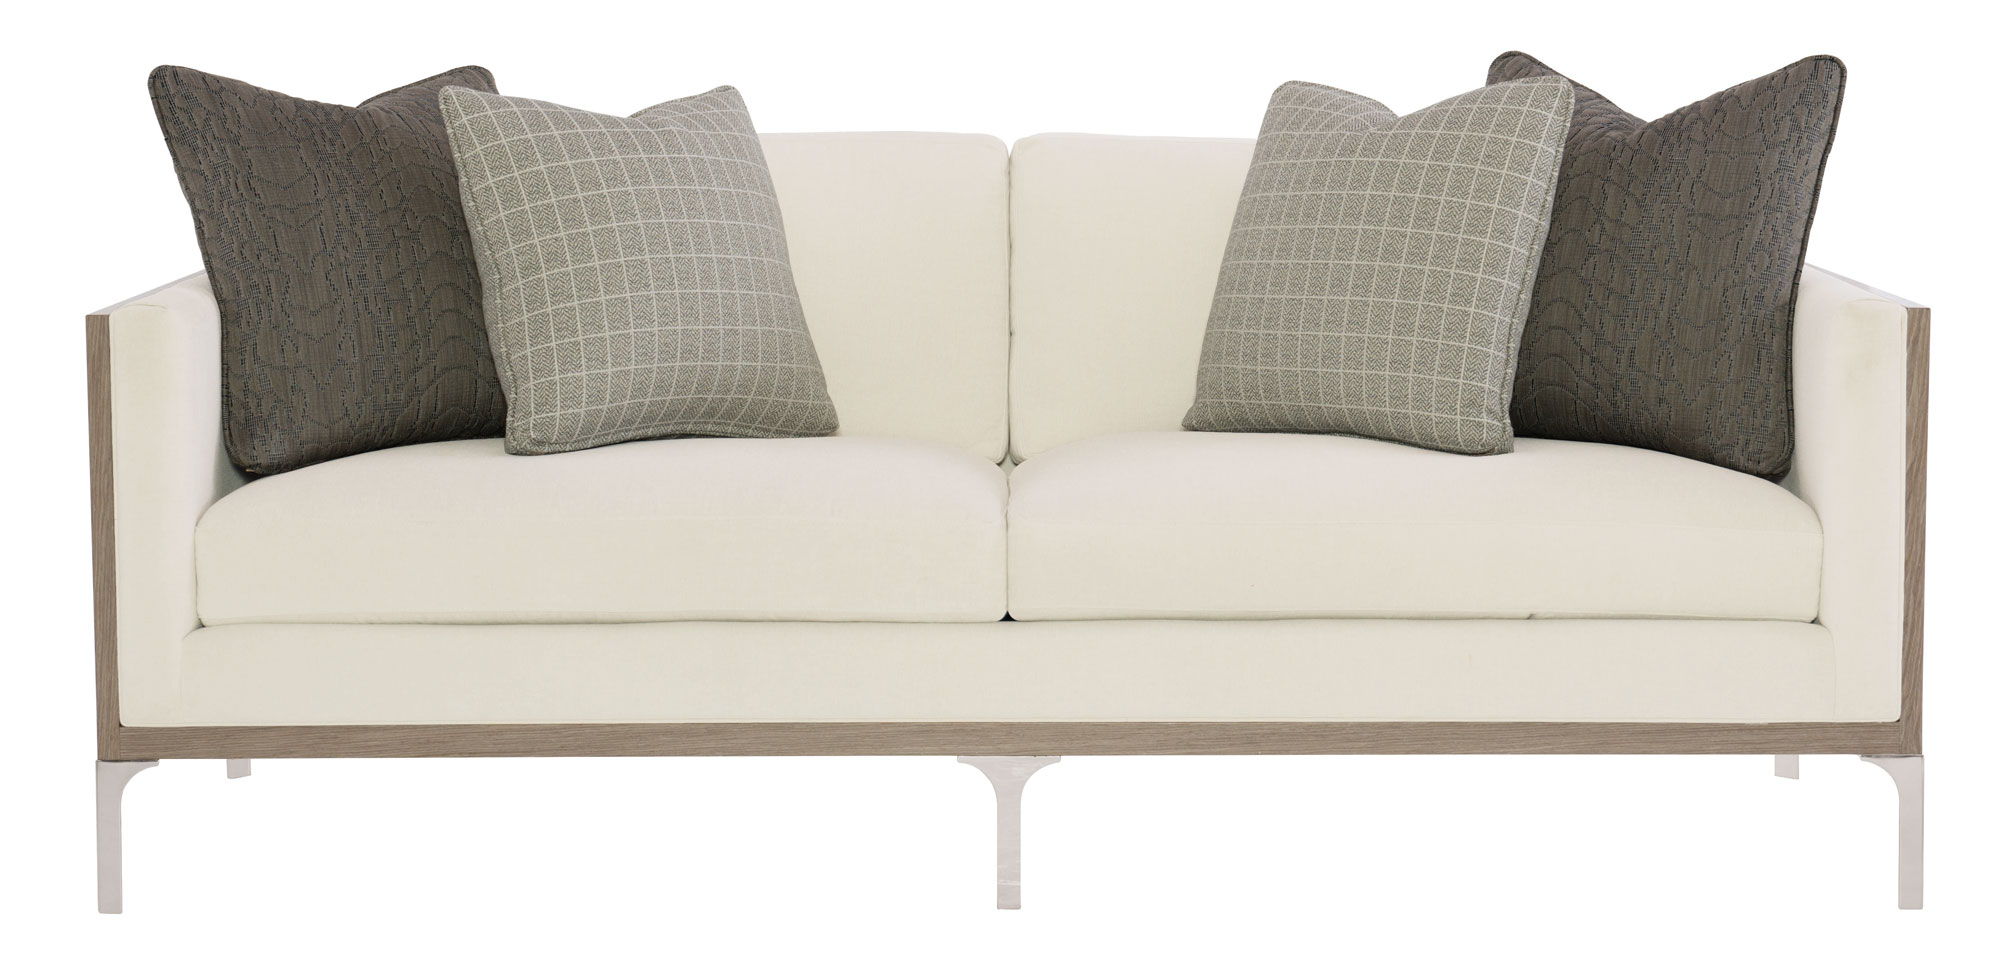 bernhardt sofa leather and fabric charcoal grey what color walls gage